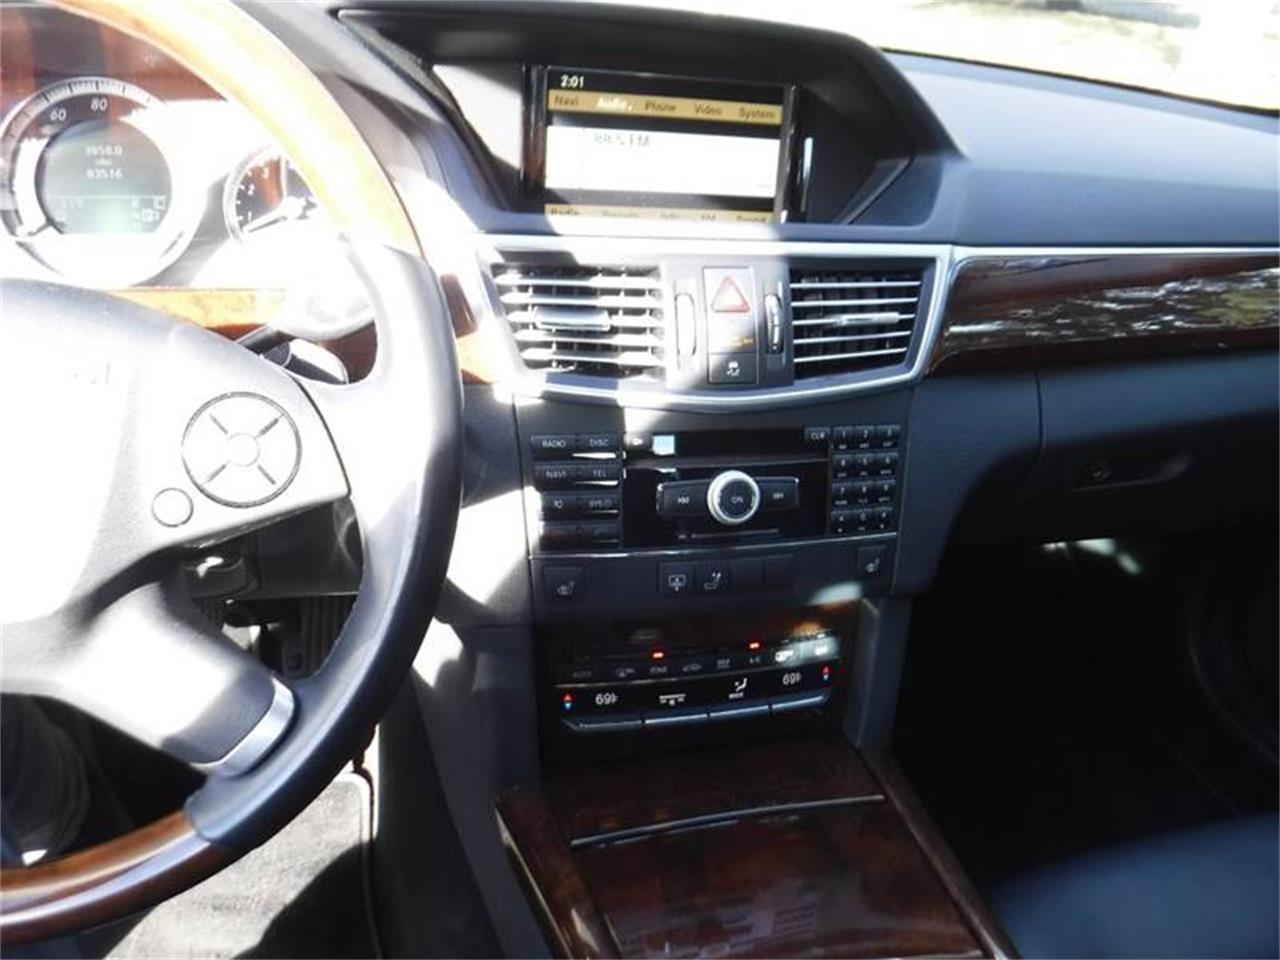 2010 Mercedes-Benz E-Class for sale in Thousand Oaks, CA – photo 12